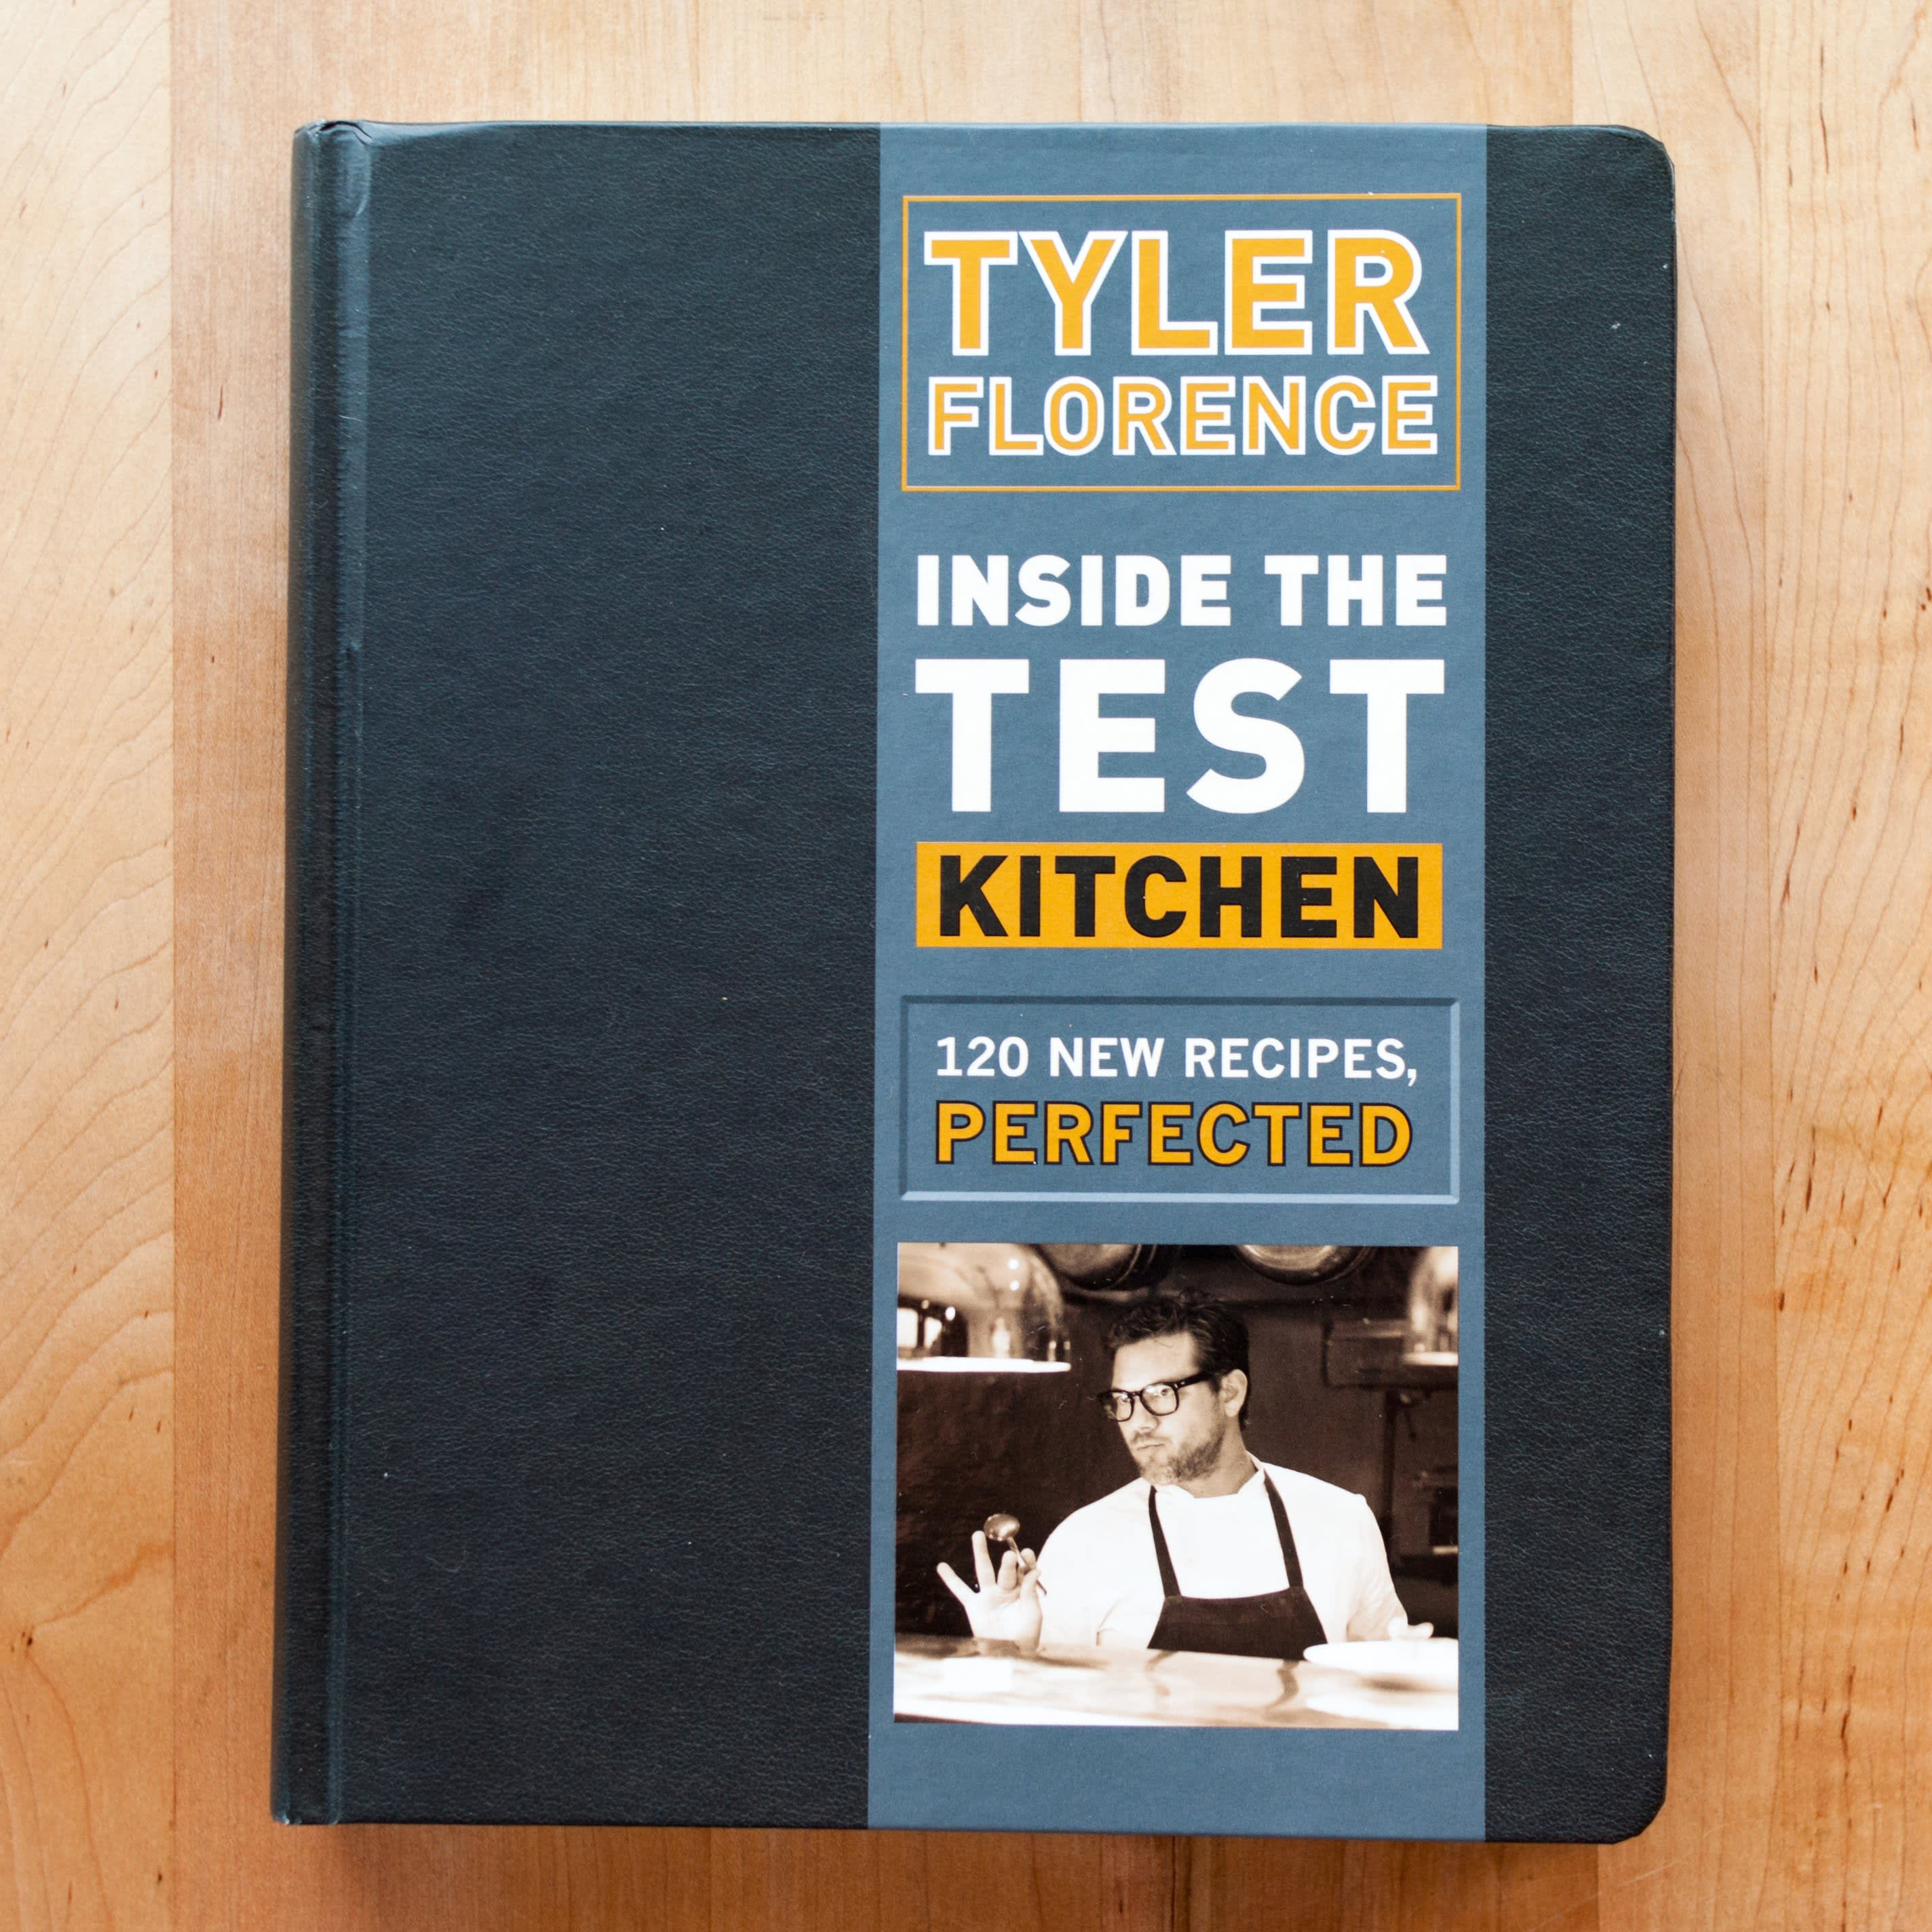 Bring Tyler Florence's Test Kitchen Into Your Home Kitchen: gallery image 1